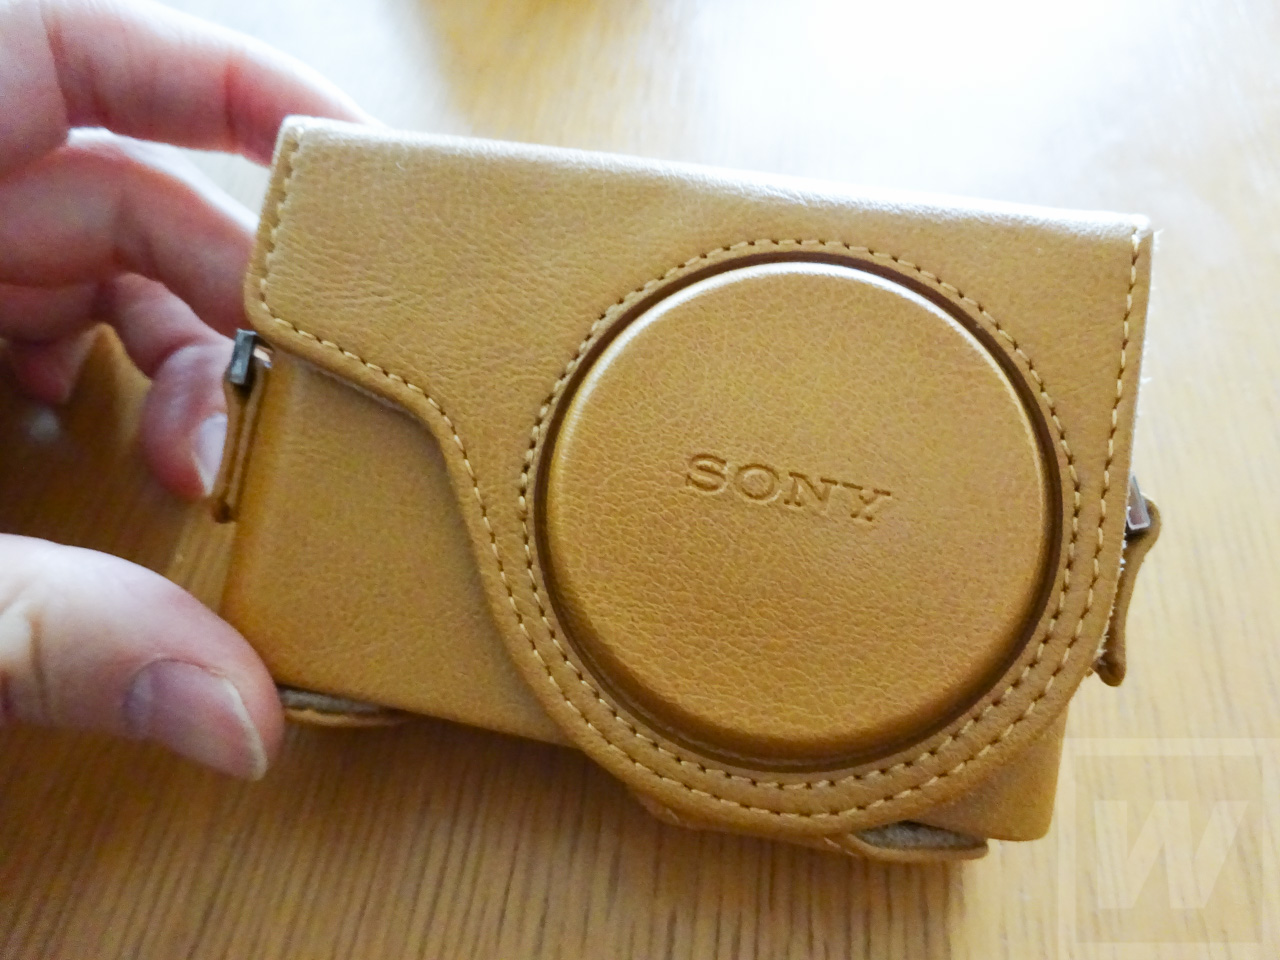 Sony WX350 Review 032